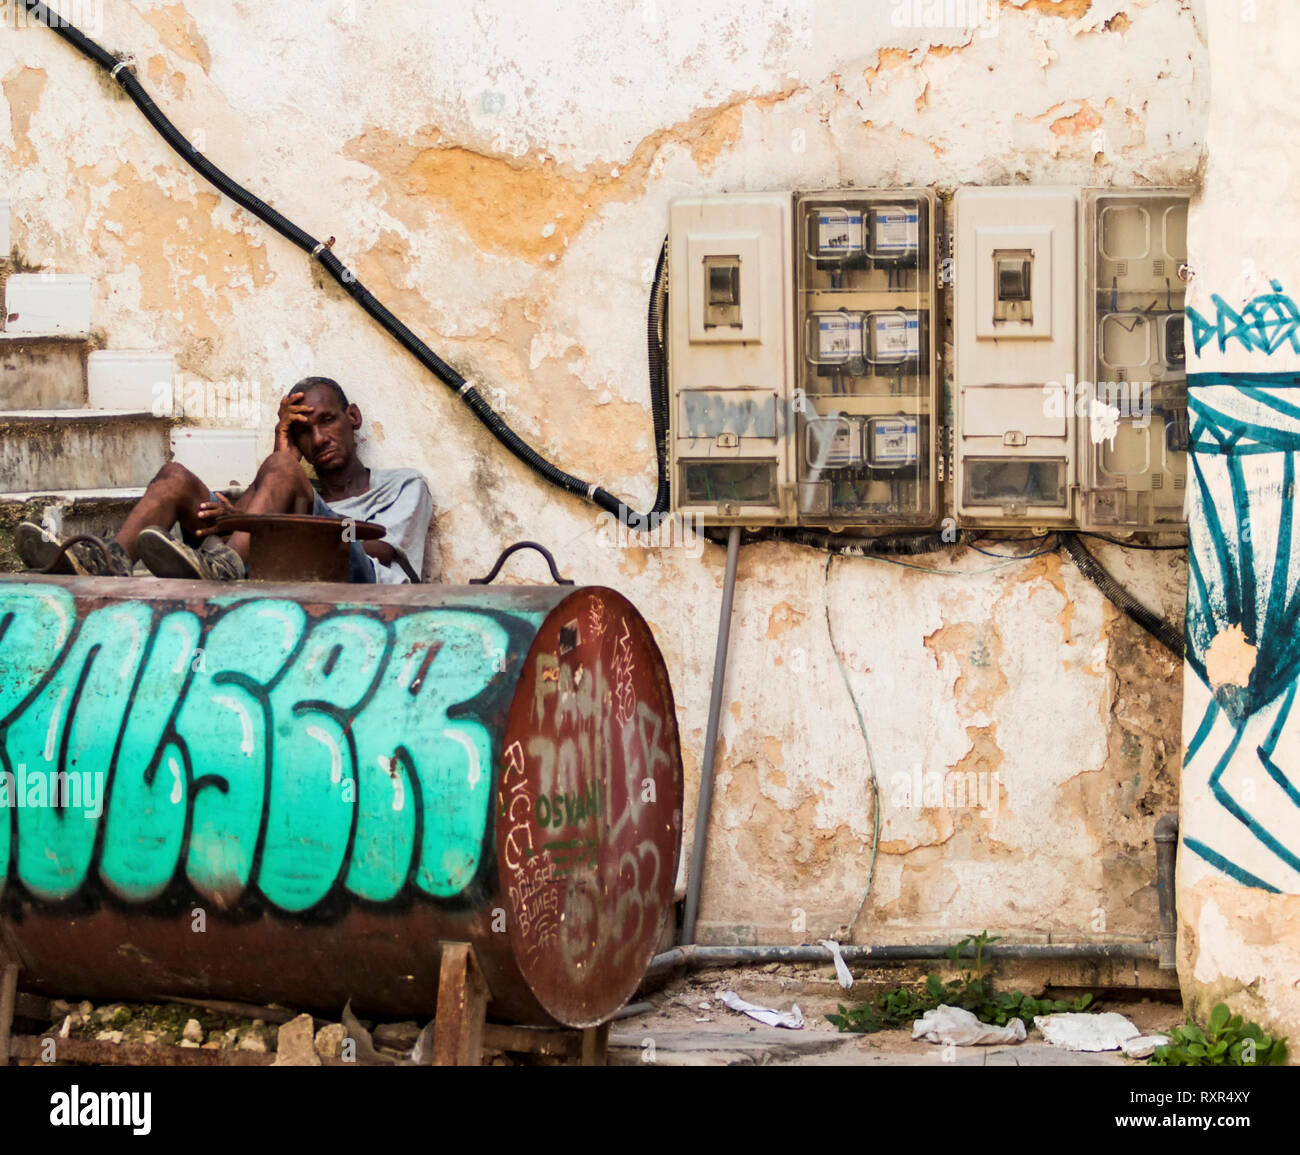 Havana, Cuba - 25 July 2018: A Cuban man sitting on steps with his legs on an oil tank leaning against a building in the shade avoiding the heat. Stock Photo